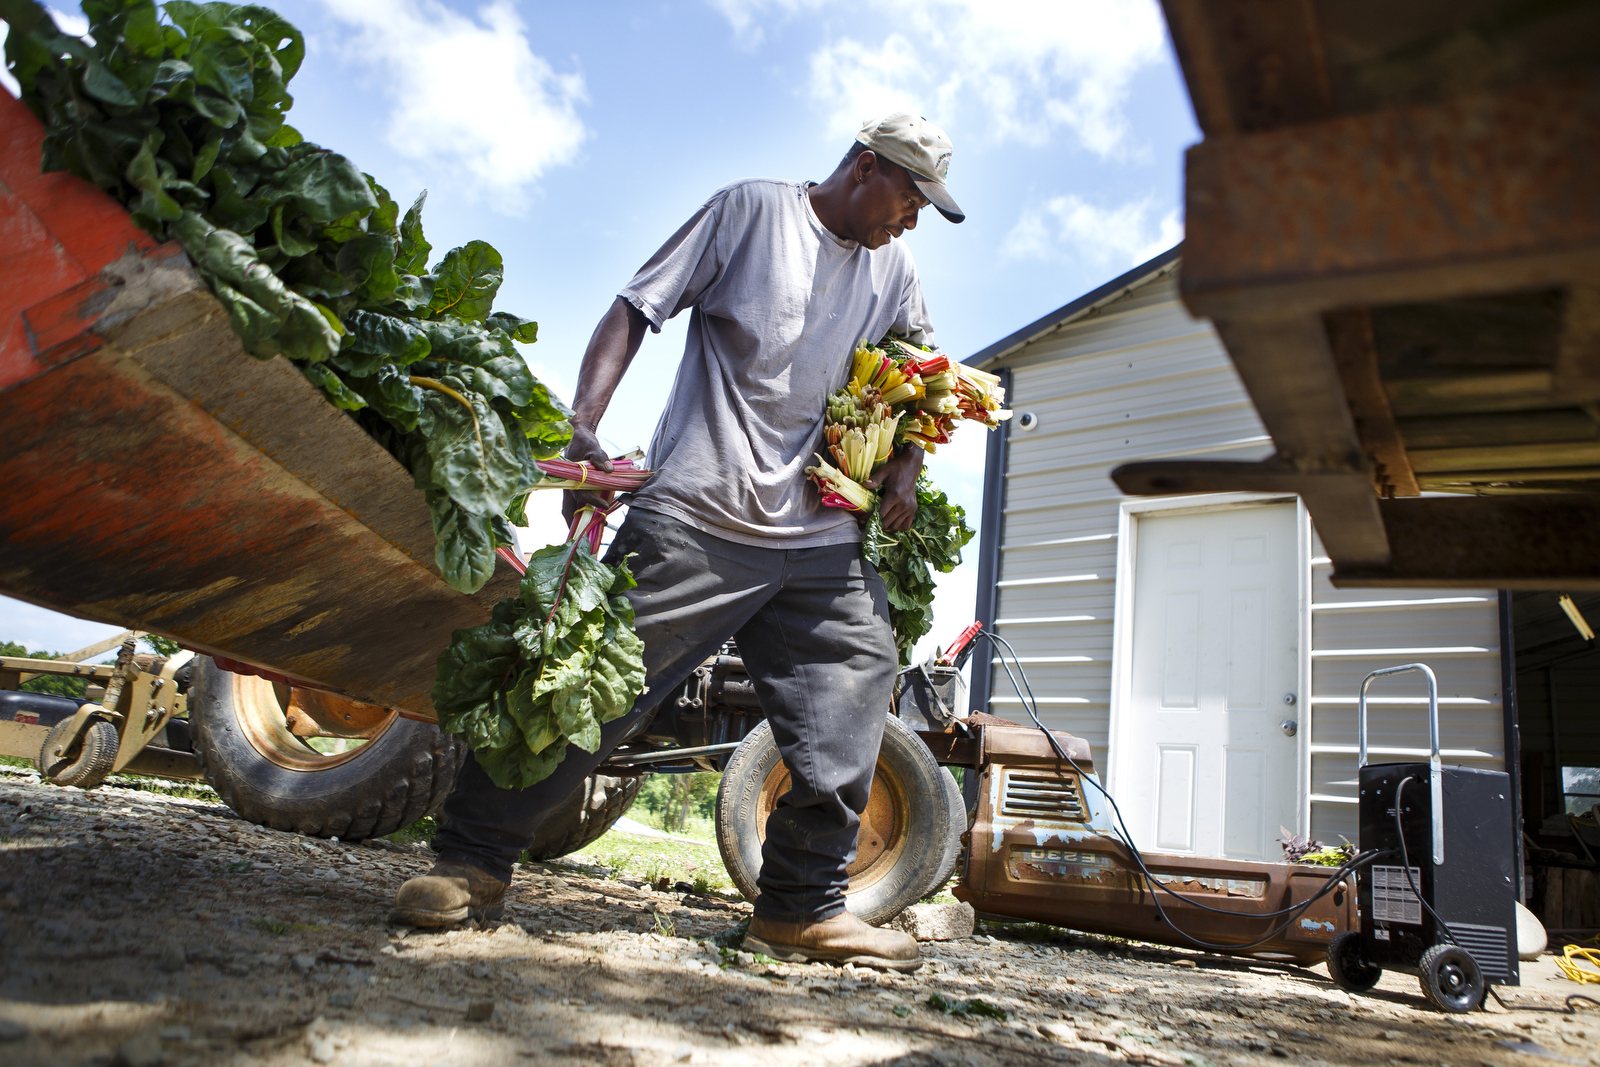 In 1999 following the largest ever civil rights settlement in the history of the United States, minority farmers in North Carolina believed that perhaps their situations would change. The USDA had acknowledged discriminatory practices when it came to lending for minority farmers. Now perhaps they would stop losing their land at rates far faster than white farmers. Perhaps they would have equal access to farm loans.   The black farmers of North Carolina were some of the first to desegregate their schools. They had been targeted by the Ku Klux Klan as crosses were burned in their front yards. They were pulled off school buses and beaten. Their parents were sharecroppers. The farmers of today grew up picking cotton and growing tobacco.  Now twenty years after Timothy Pigford filed his historic lawsuit, many black farmers in North Carolina continue to struggle to find innovative ways to stay on their land. Finding niche markets such as organic farming has allowed many to make ends meet. But without access to capital and resources, their hopes that farming will be a viable career for their children often seems like a distant dream.